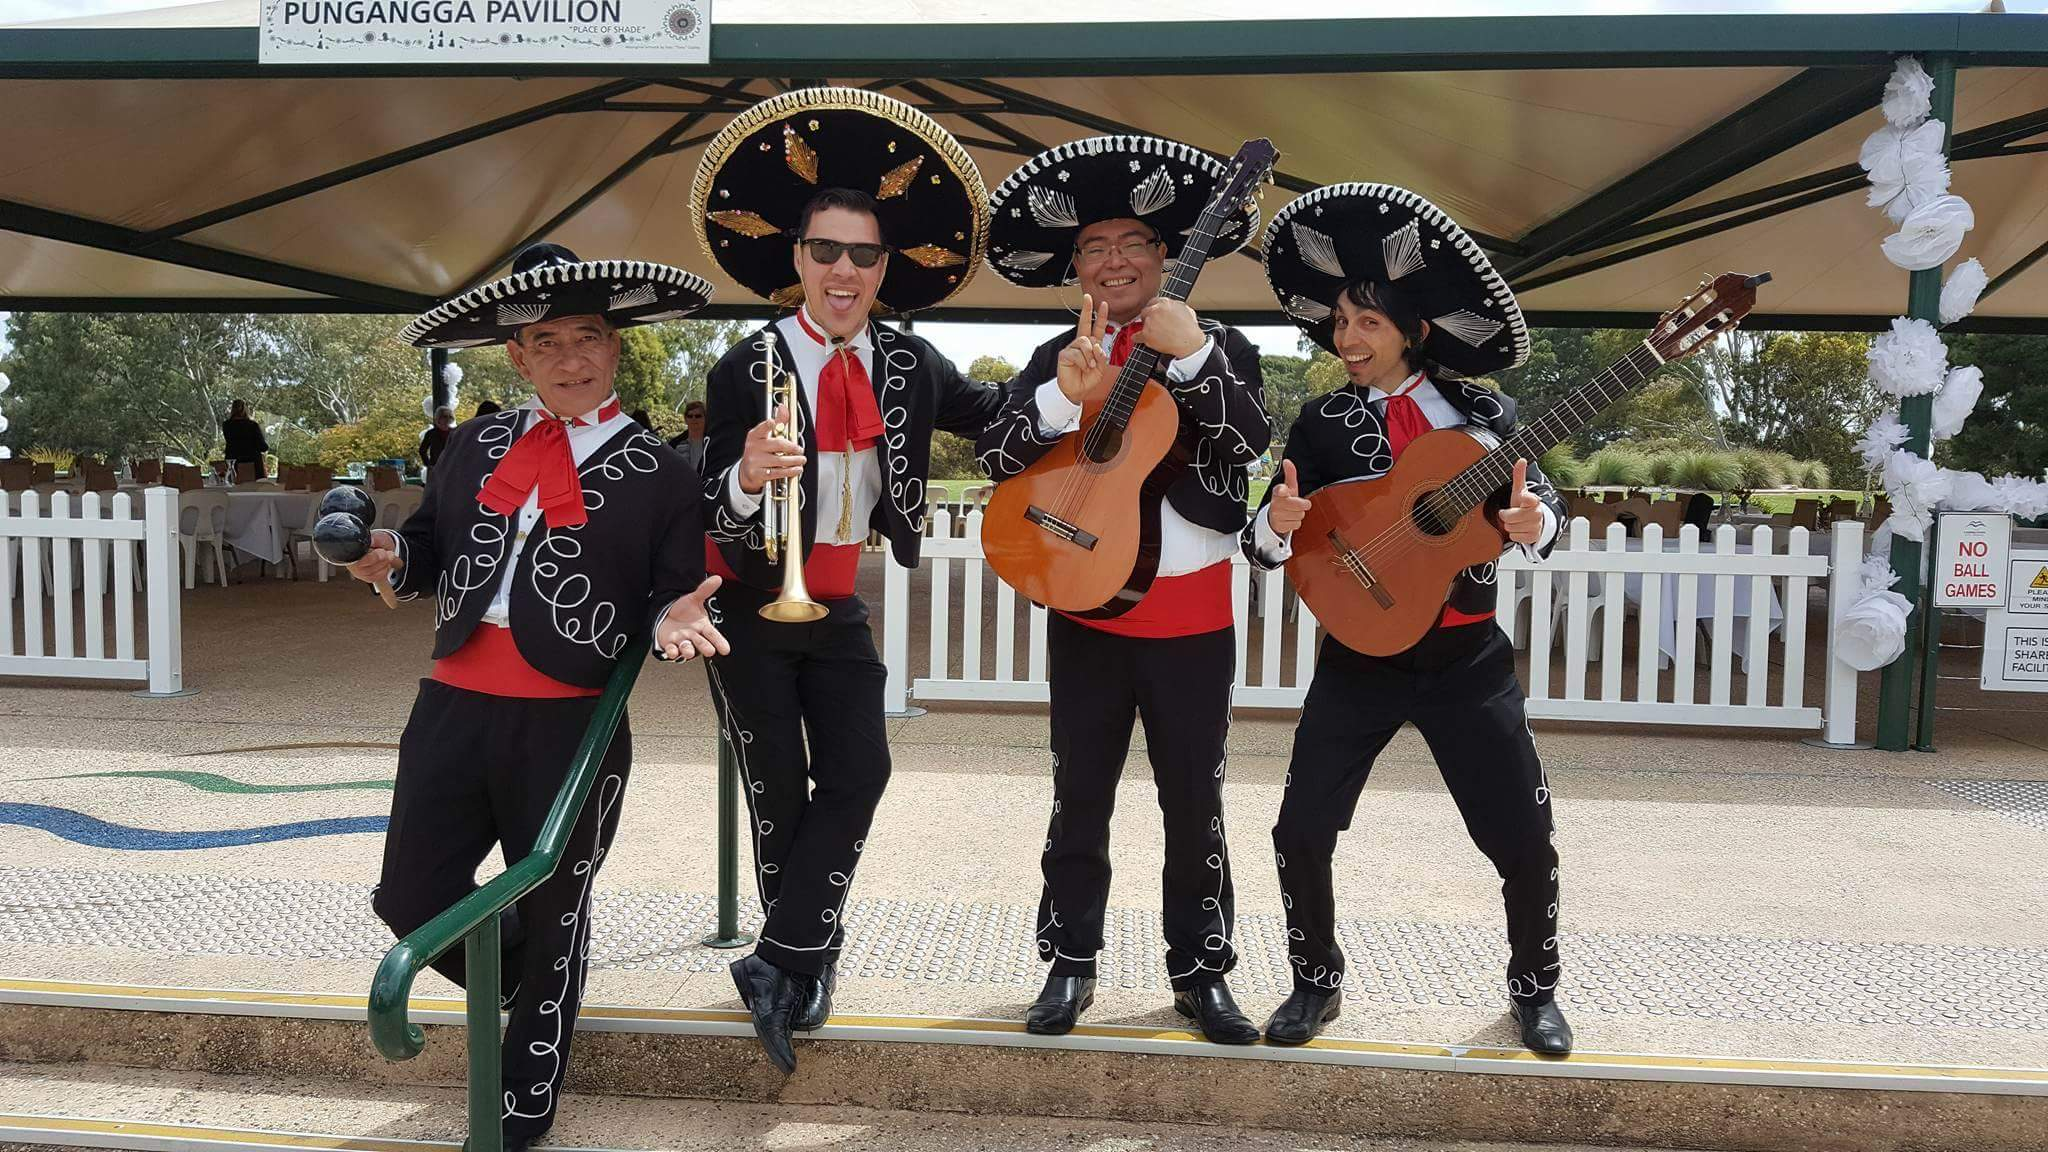 thorndon-park-birthday-events-mexican-theme-adelaide